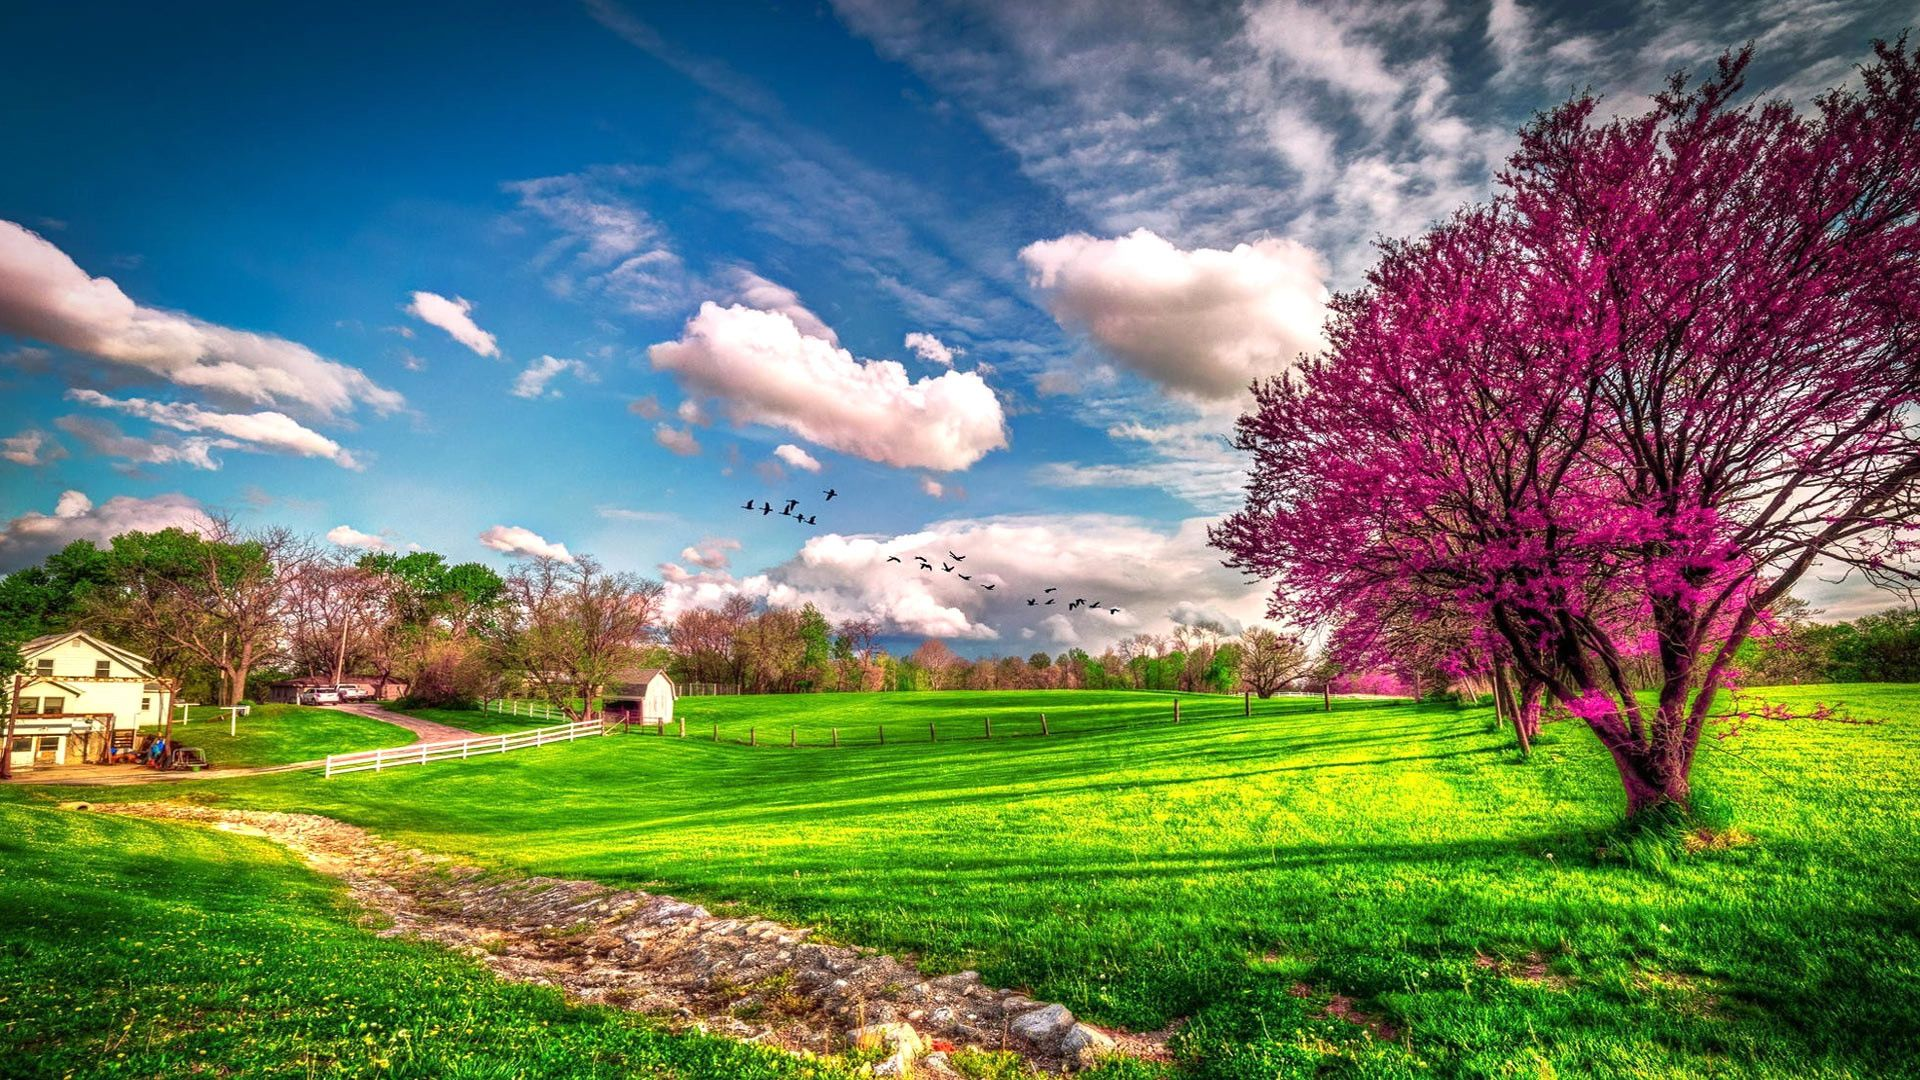 Wallpaper Download 1920x1080 Landscape Beautiful Spring Nature Spring Wallpapers Seasons Wallpapers Do Spring Wallpaper Spring Landscape Scenery Wallpaper